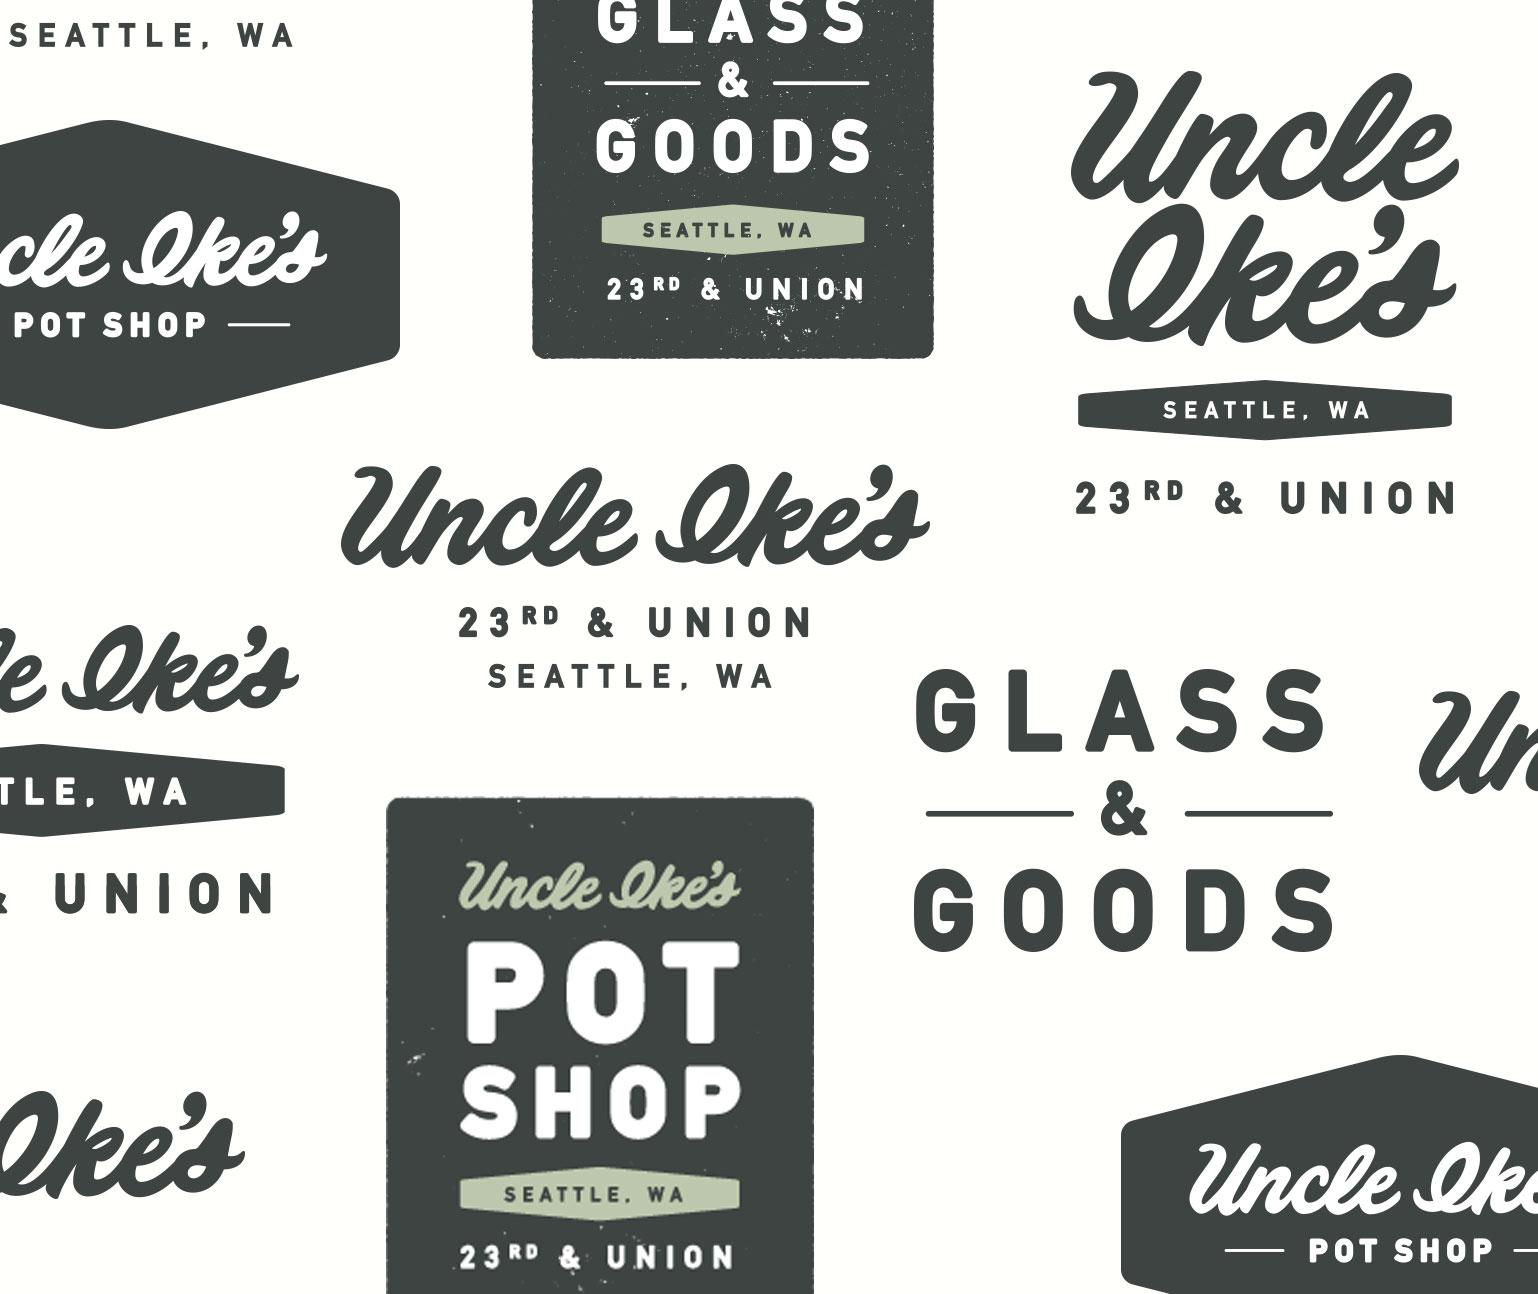 Various Uncle Ike's logos and type treatments in a loose grid